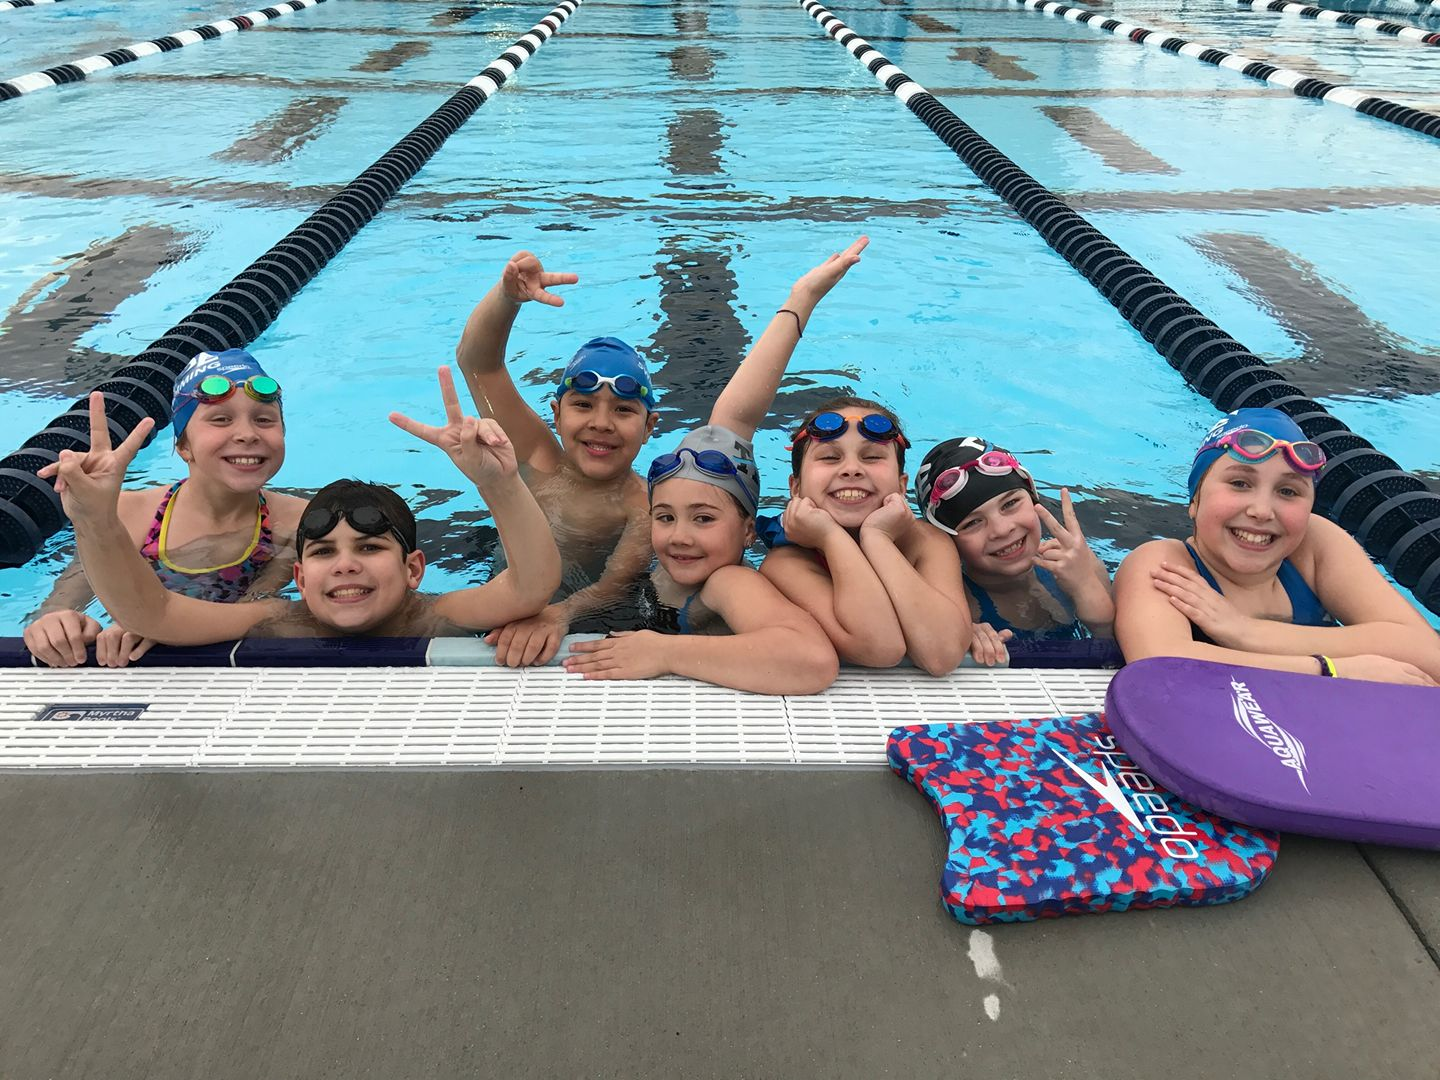 Picture of young swimmers in a pool